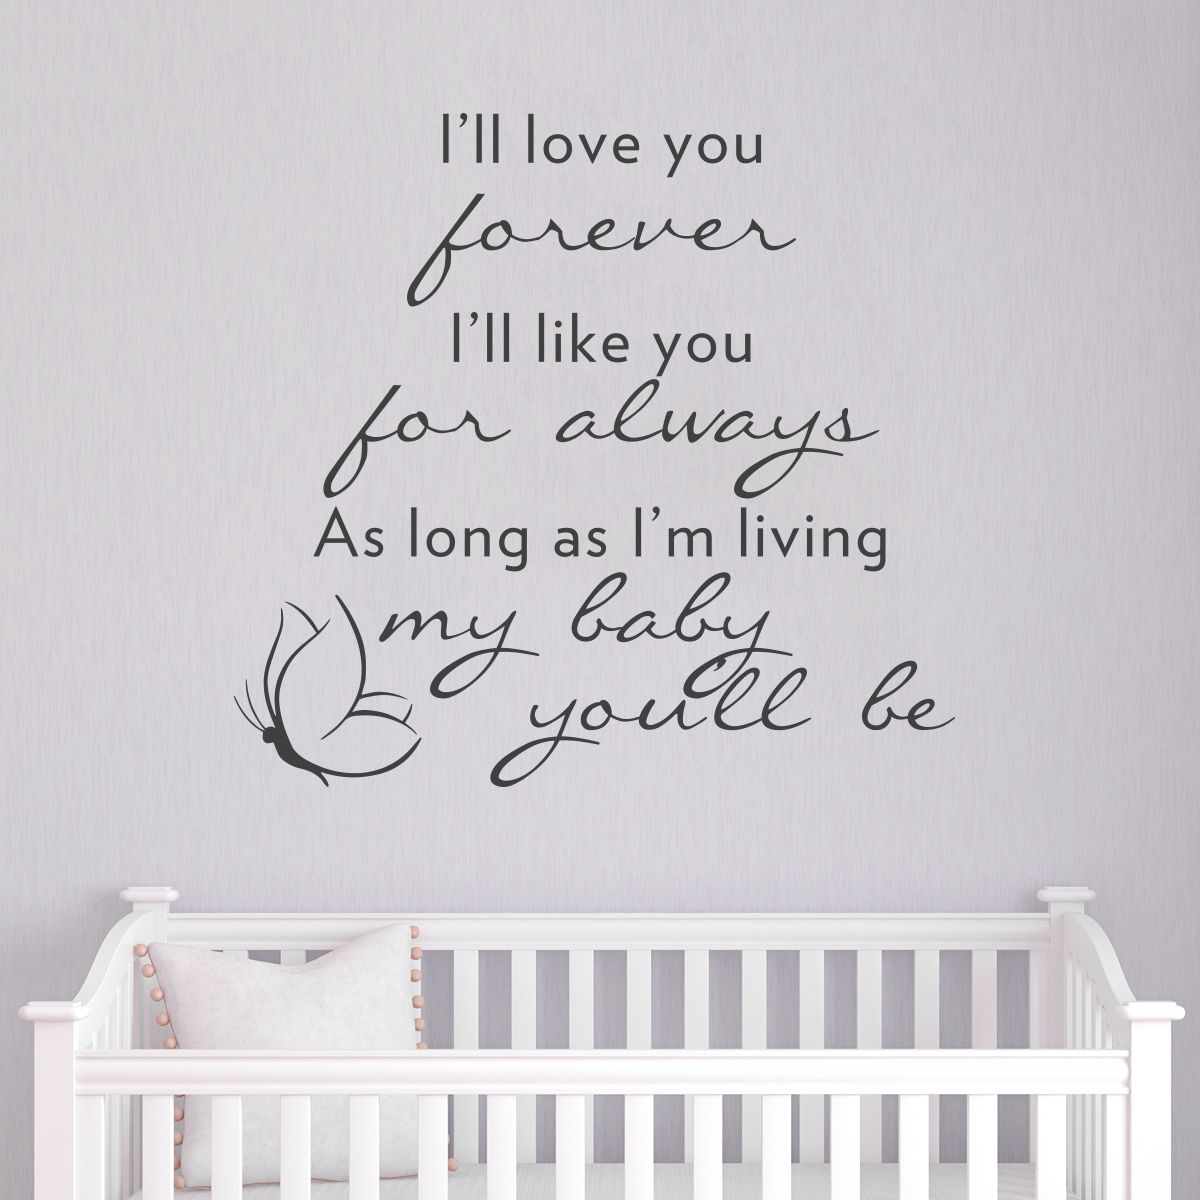 I'll love you forever Wall Art Decal | Baby love quotes ...